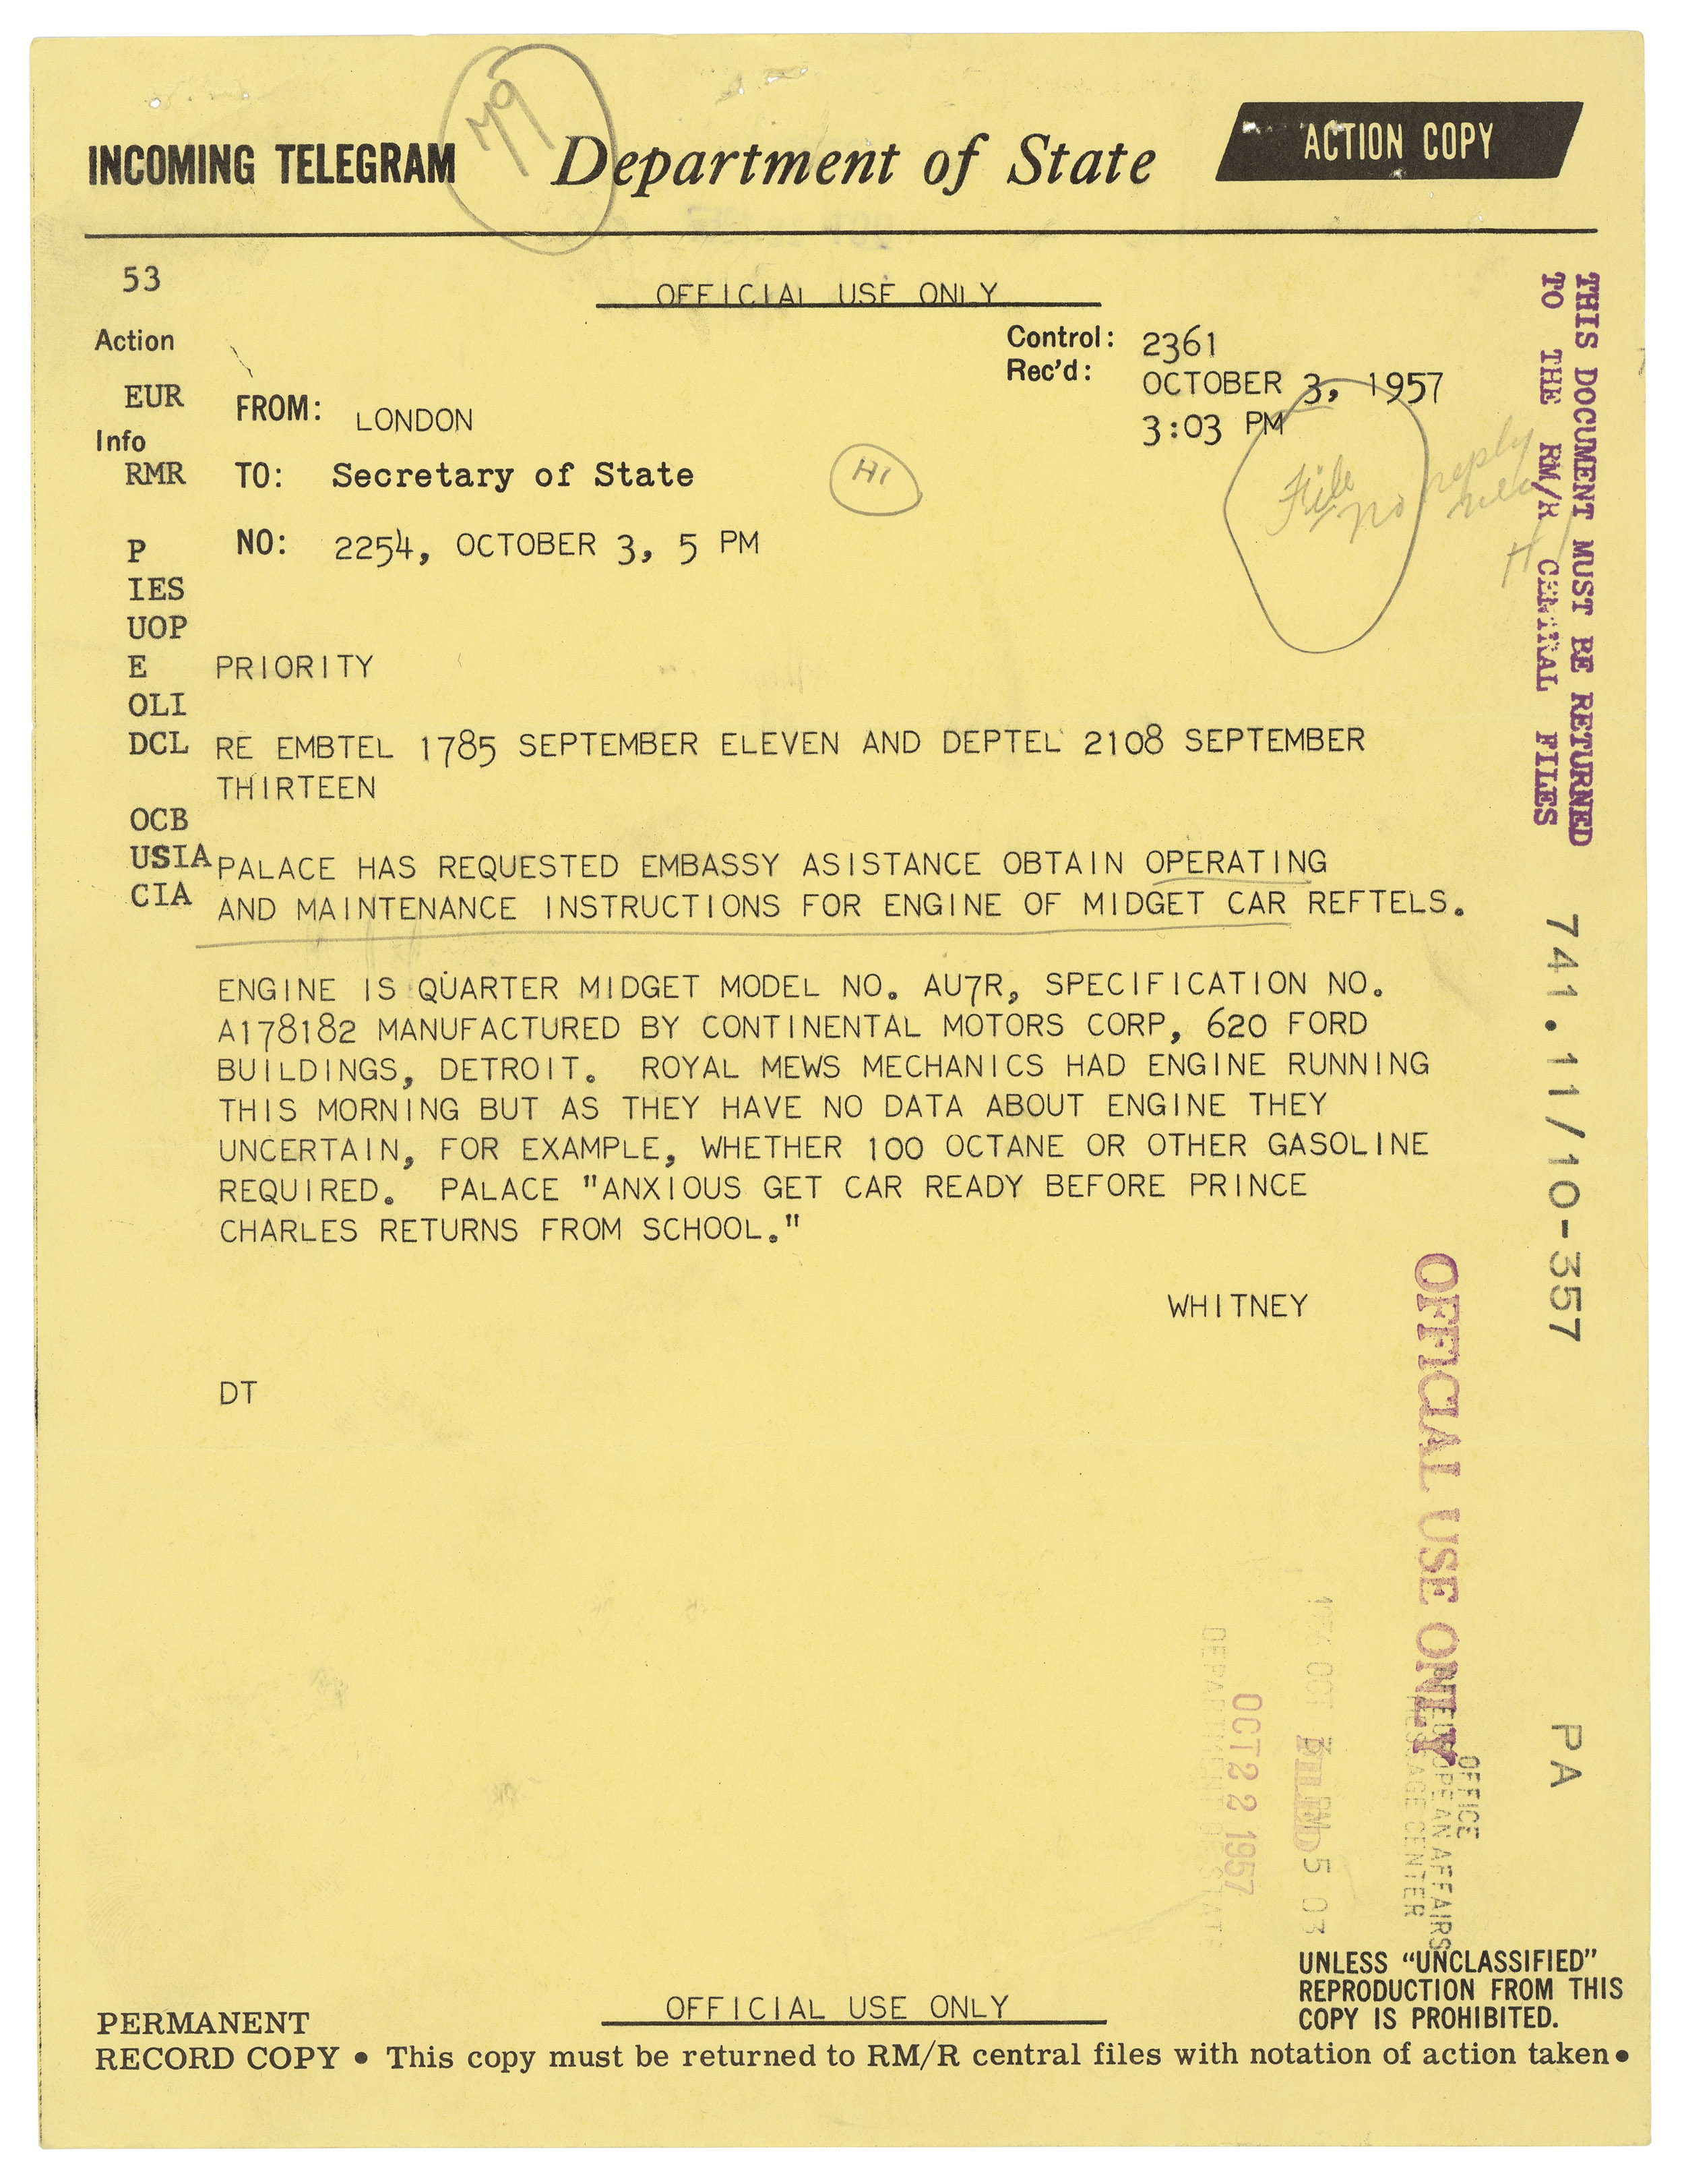 Telegram from U.S. Embassy in London to the Secretary of State,October 3, 1957